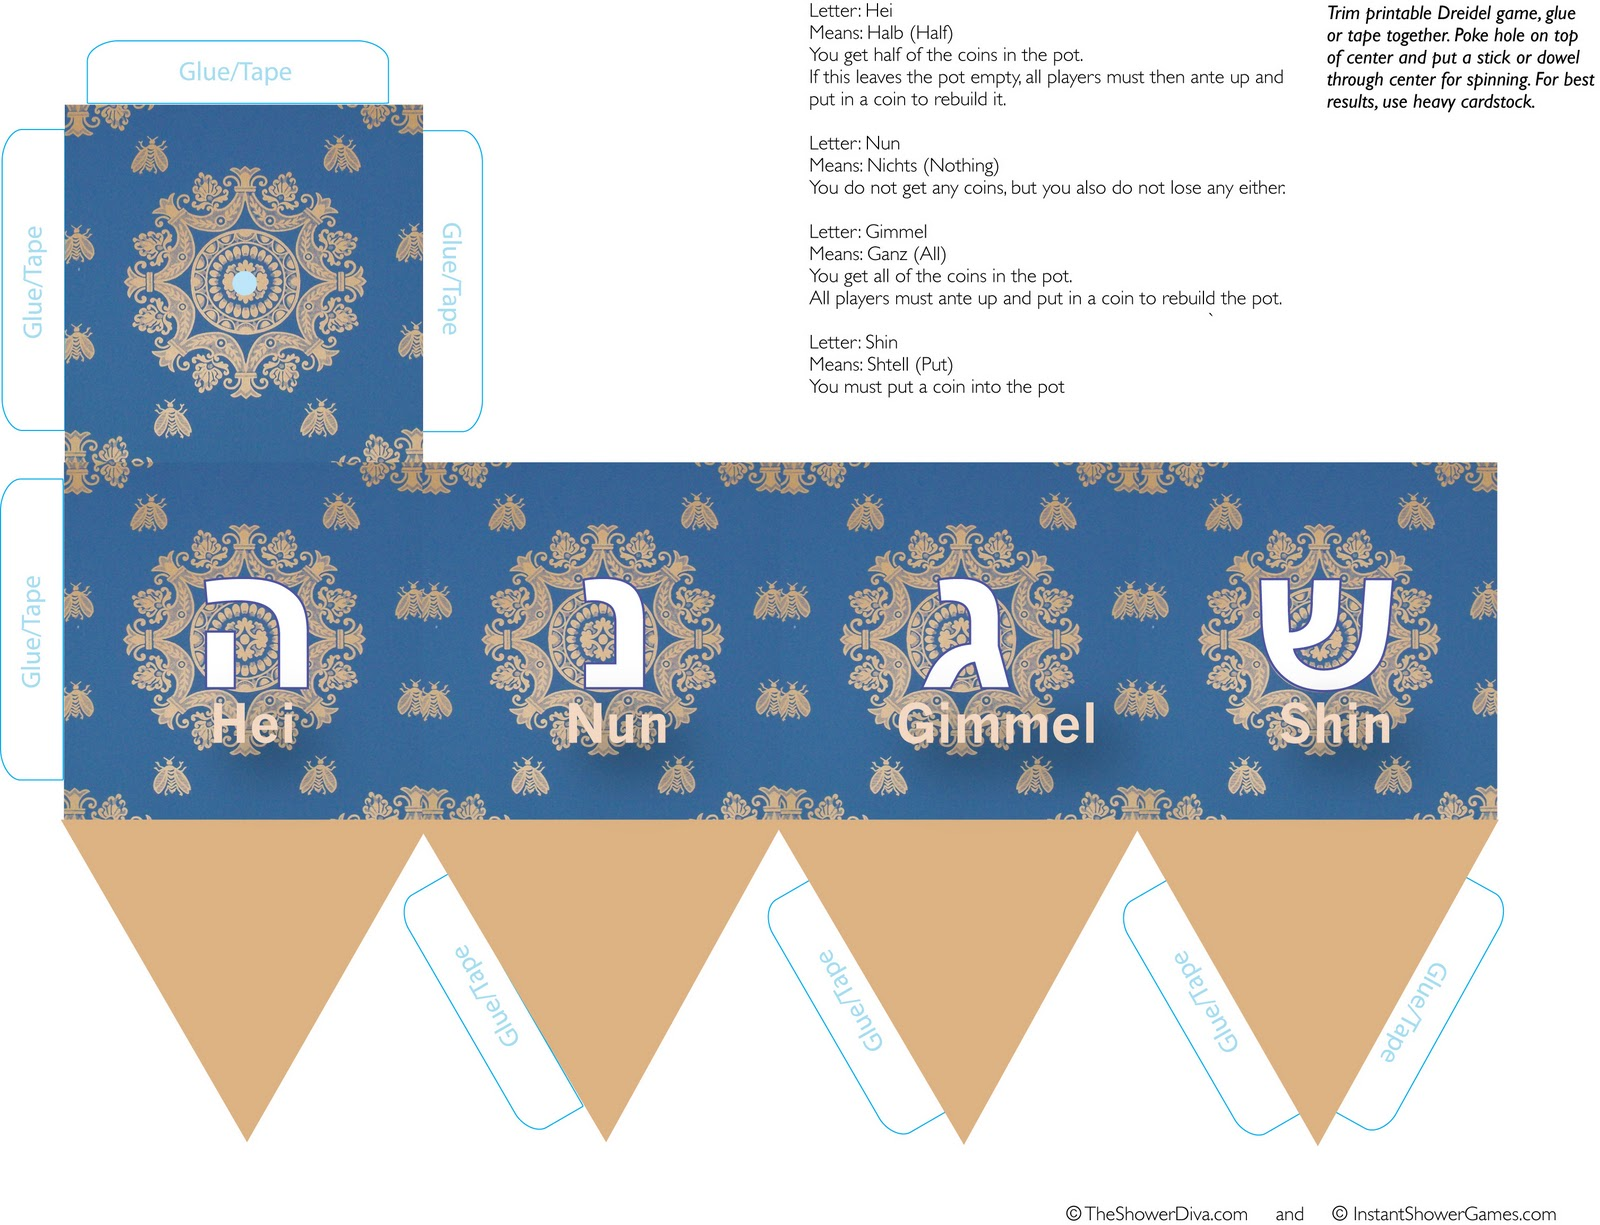 image about Printable Dreidel titled Cost-free Printable Dreidel Behavior for Dreidel Paper Activity The